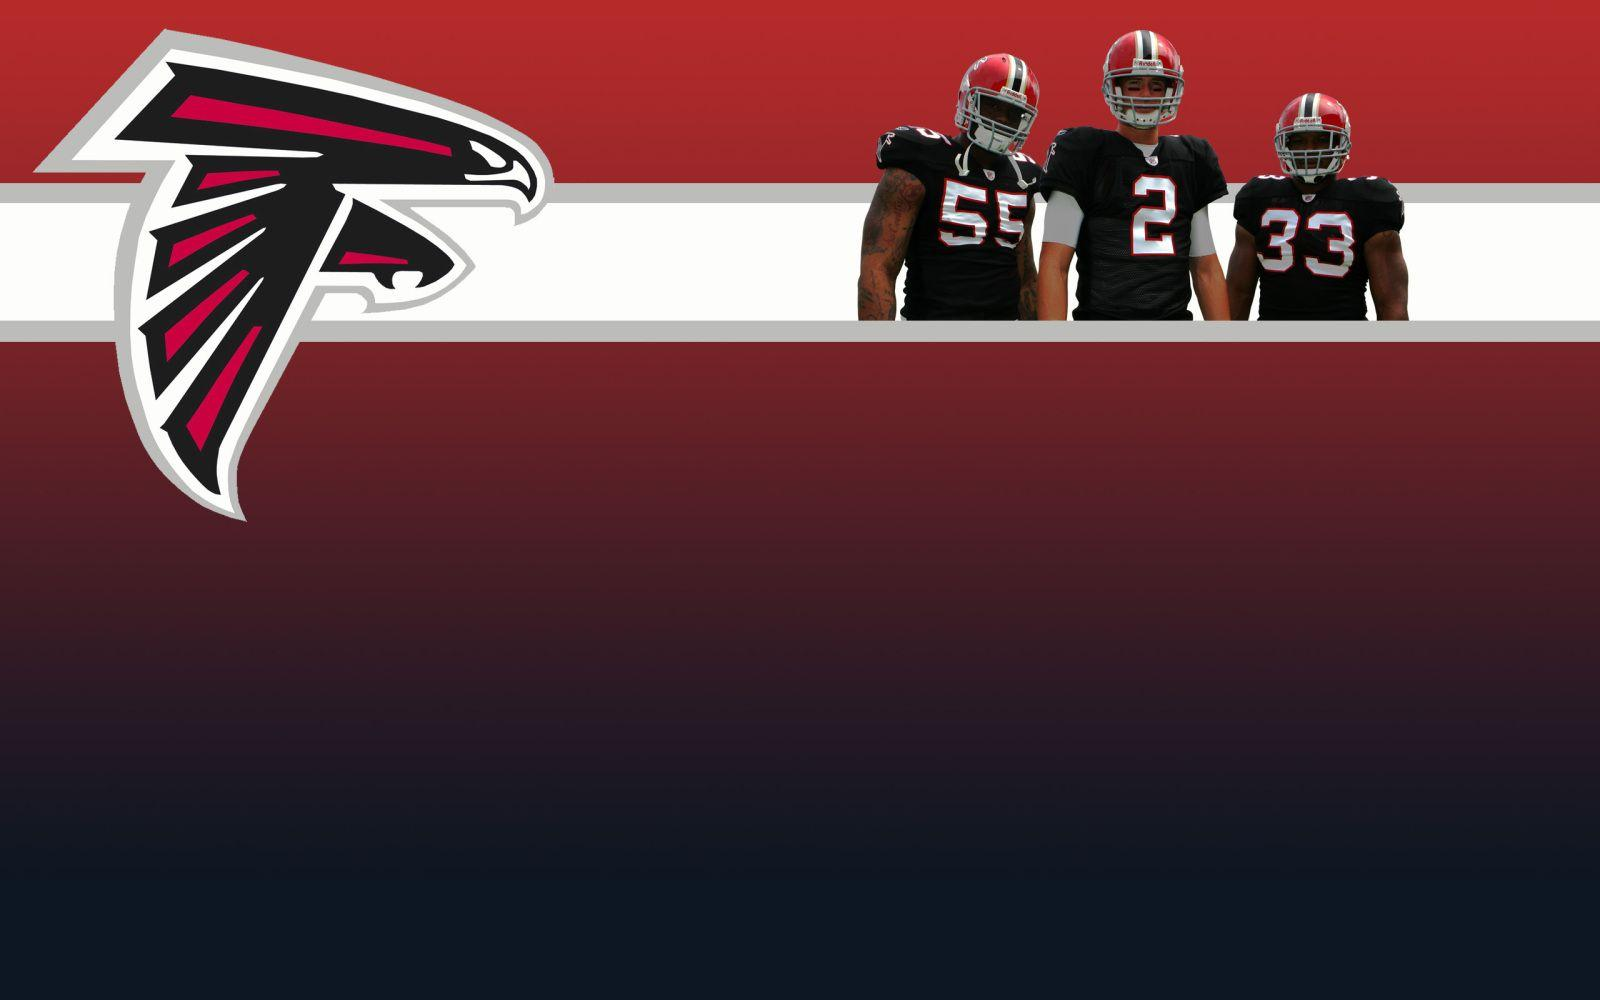 Hd Wallpapers Nfl Atlanta Falcons 1440 X 900 82 Kb Jpeg